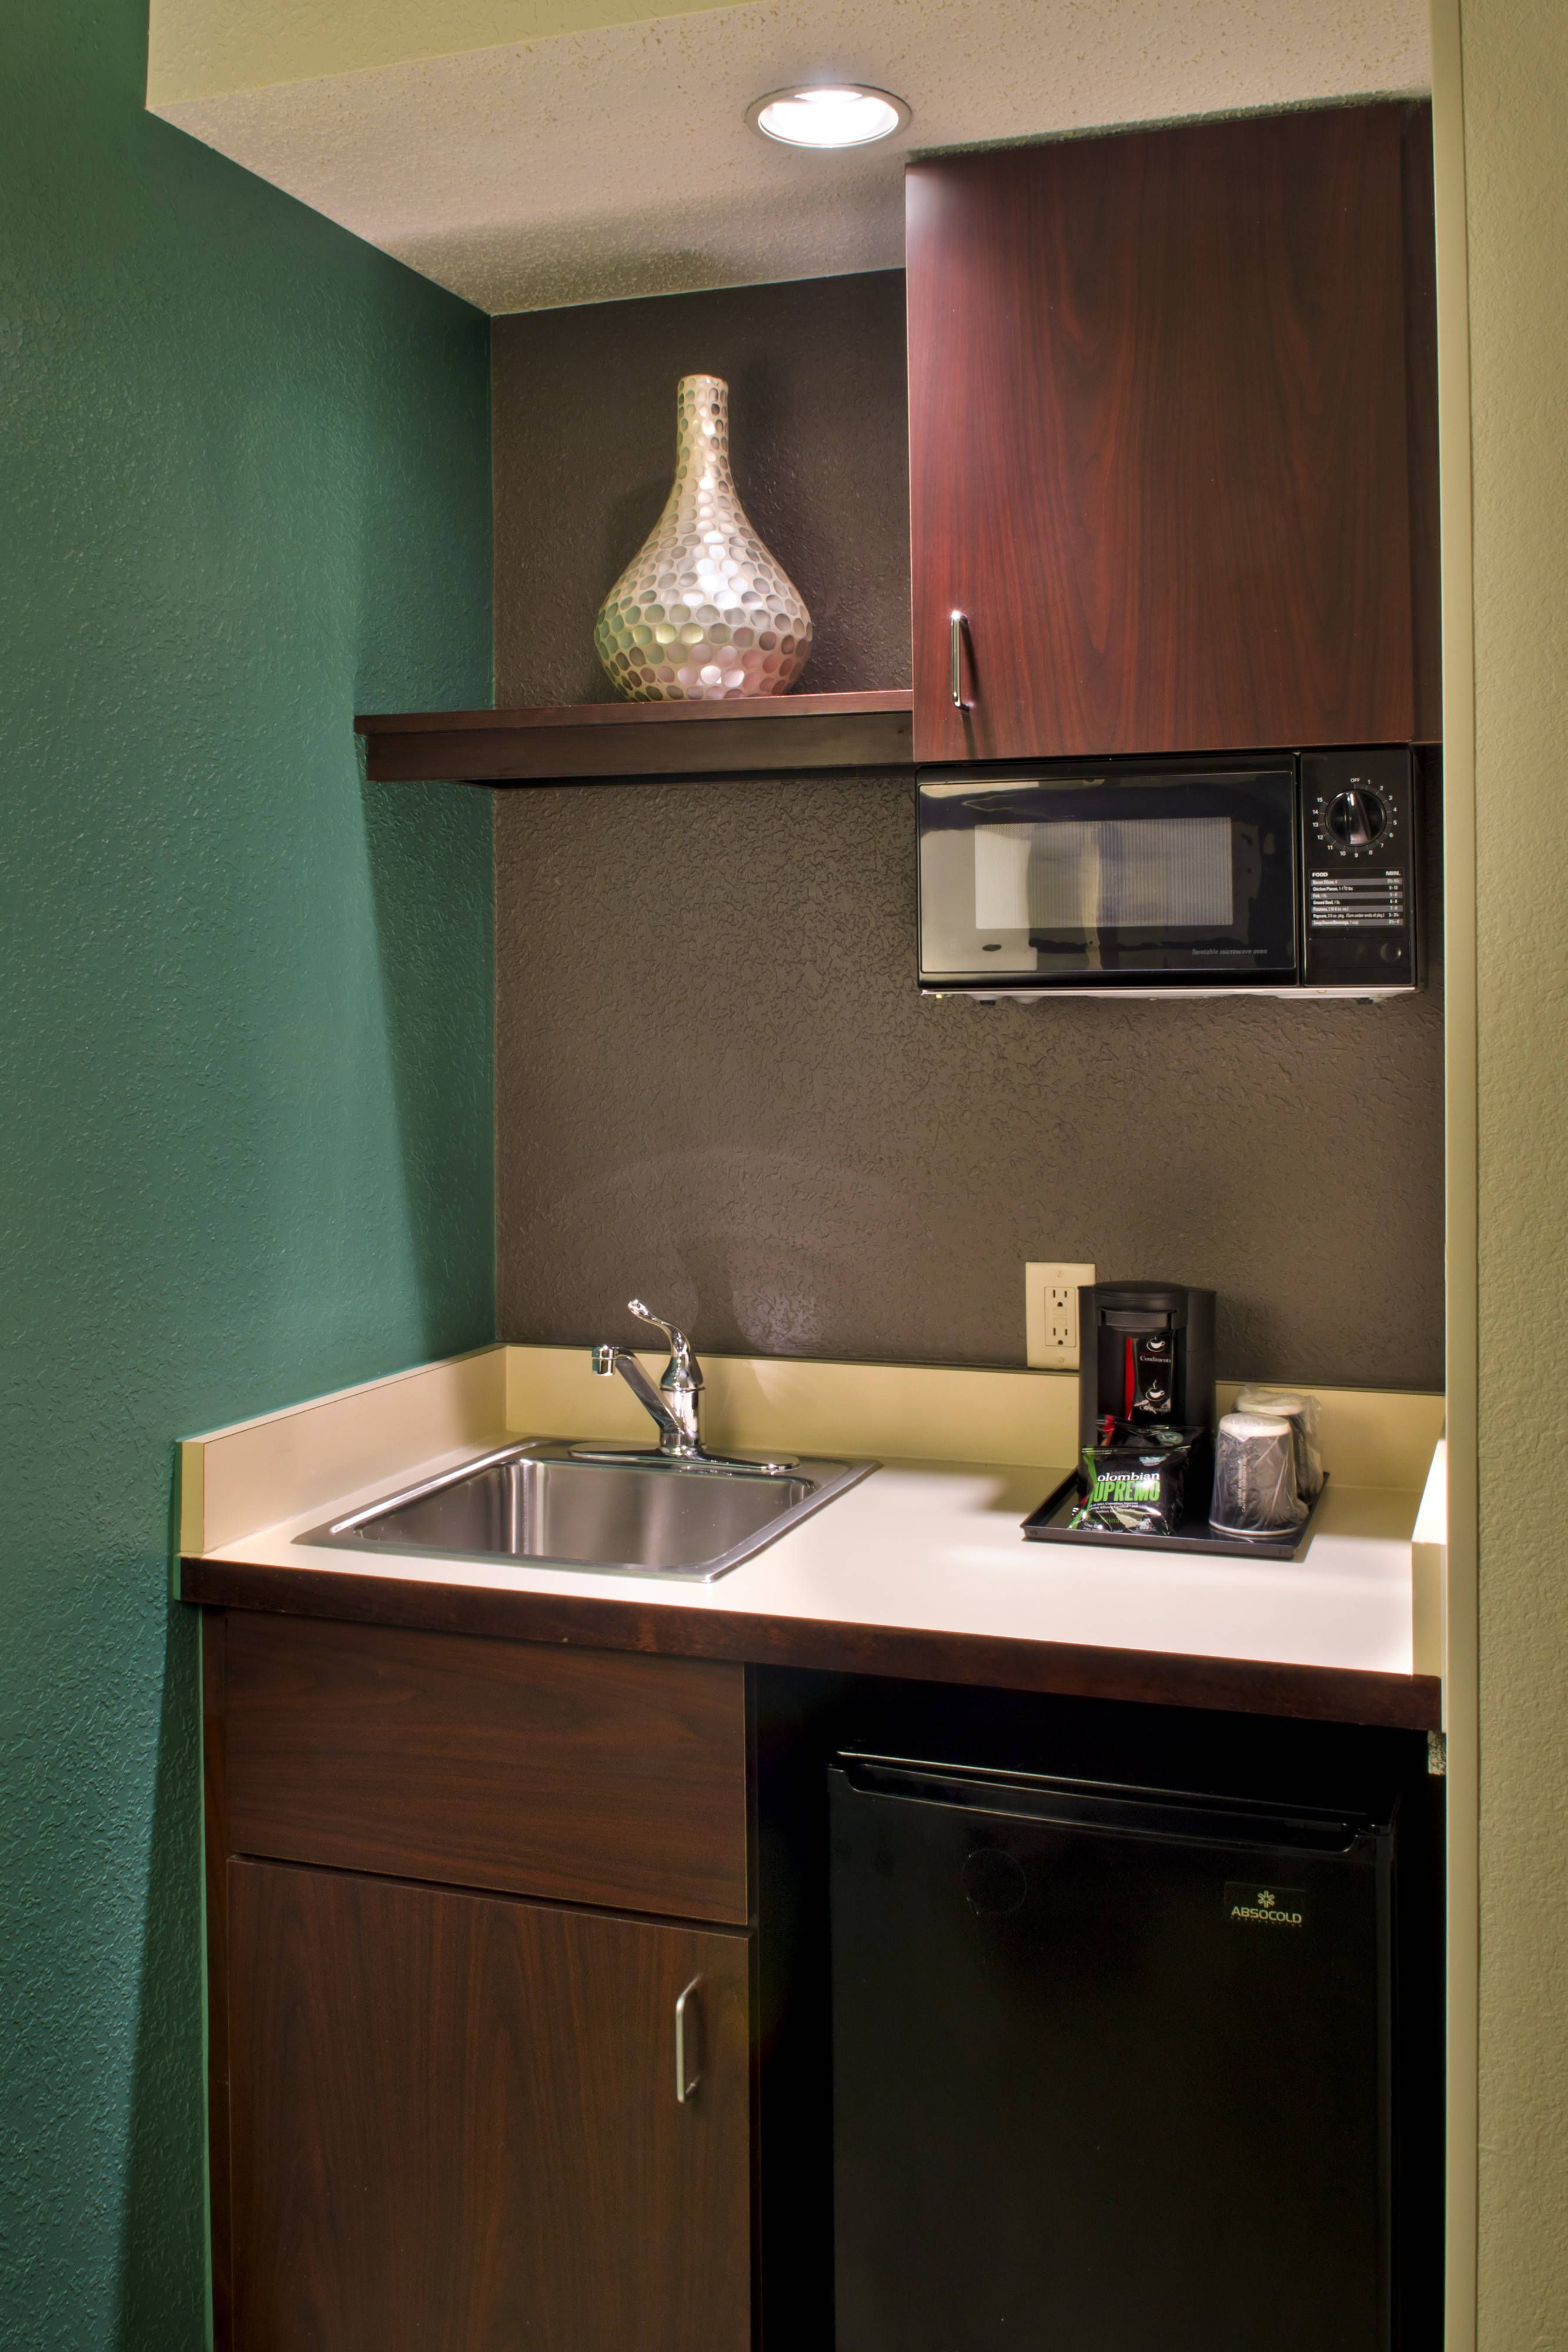 Springhill Suites Danbury Suite Kitchenette Travel Holiday